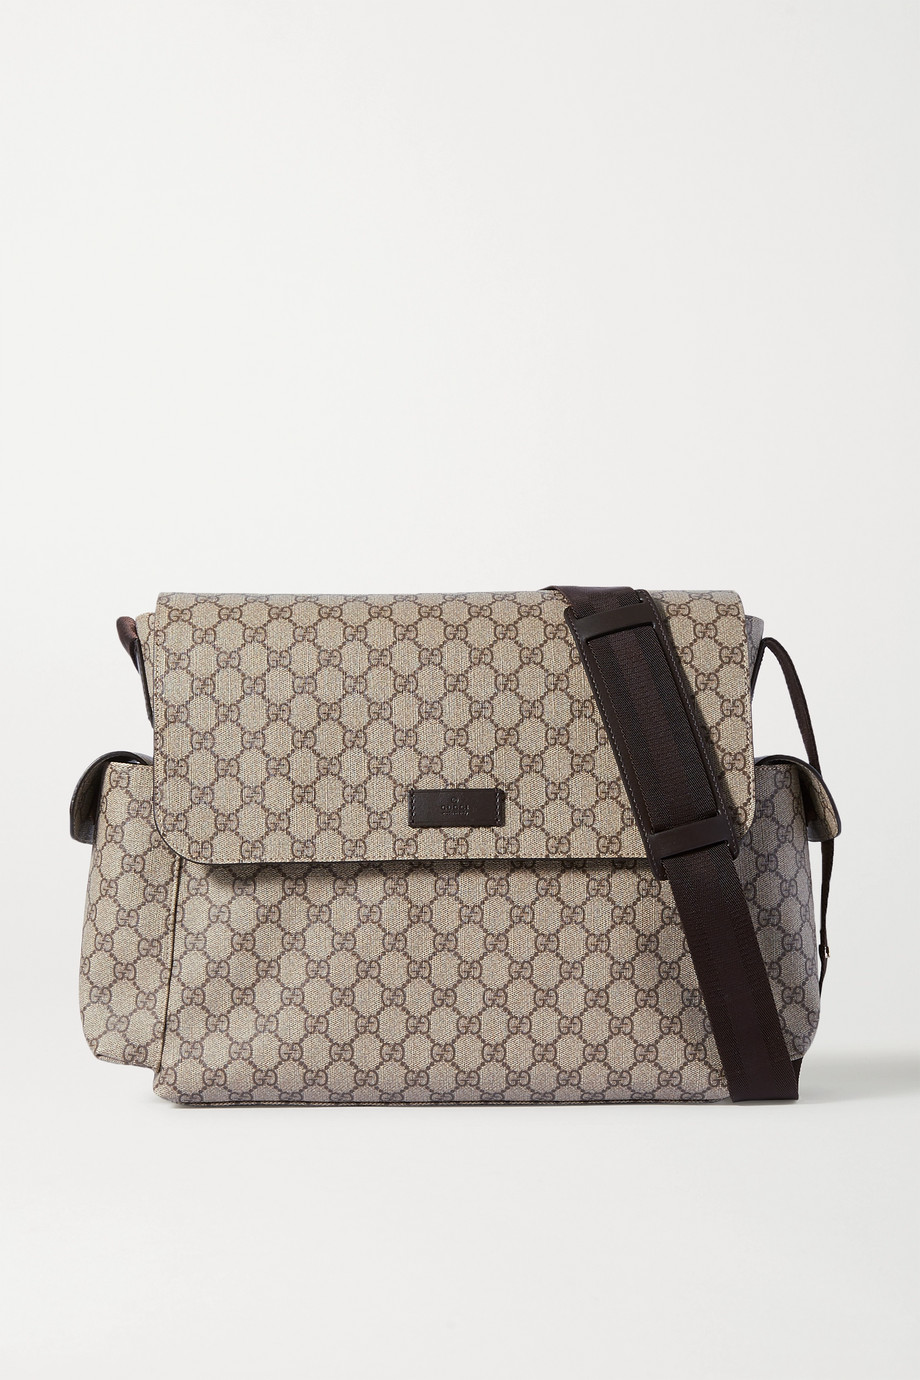 GUCCI Ophidia printed coated-canvas diaper bag